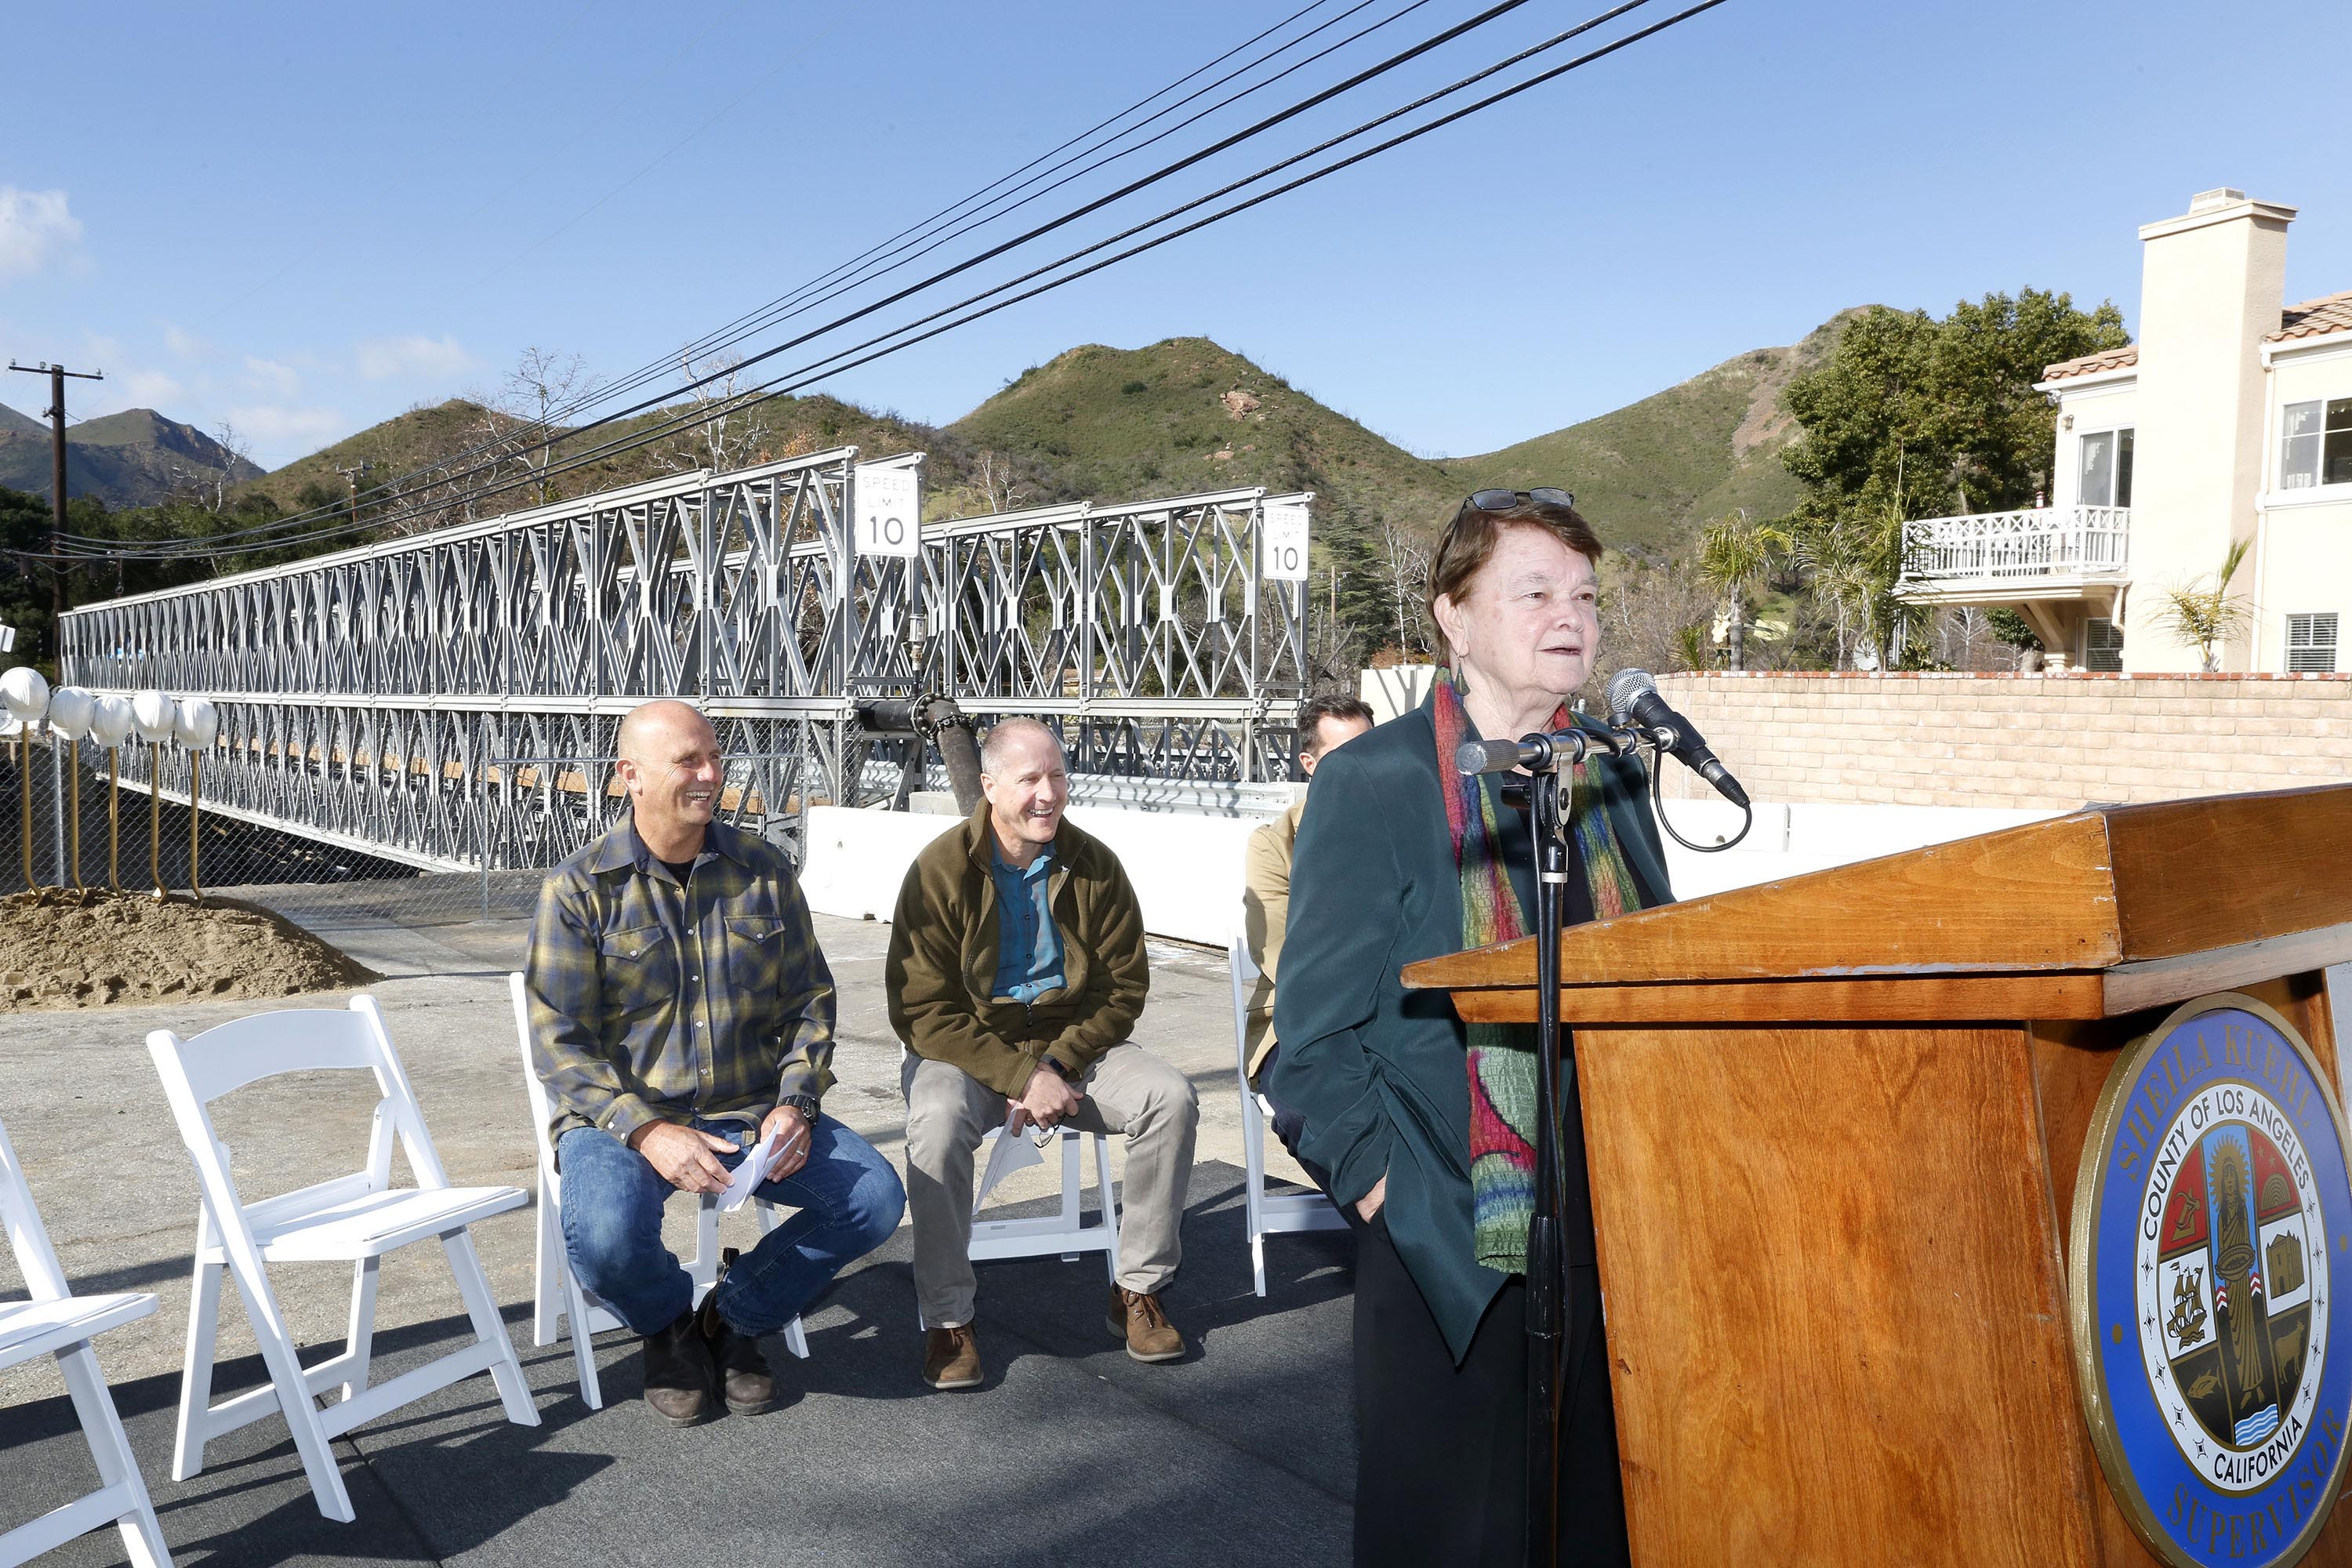 District 3 – Supervisor Sheila Kuehl<br> <b>Jan. 11, 2020 – Mulholland Bridge Groundbreaking. </b><br> <i>Photo by Aurelia Ventura / For the Board of Supervisors</i>